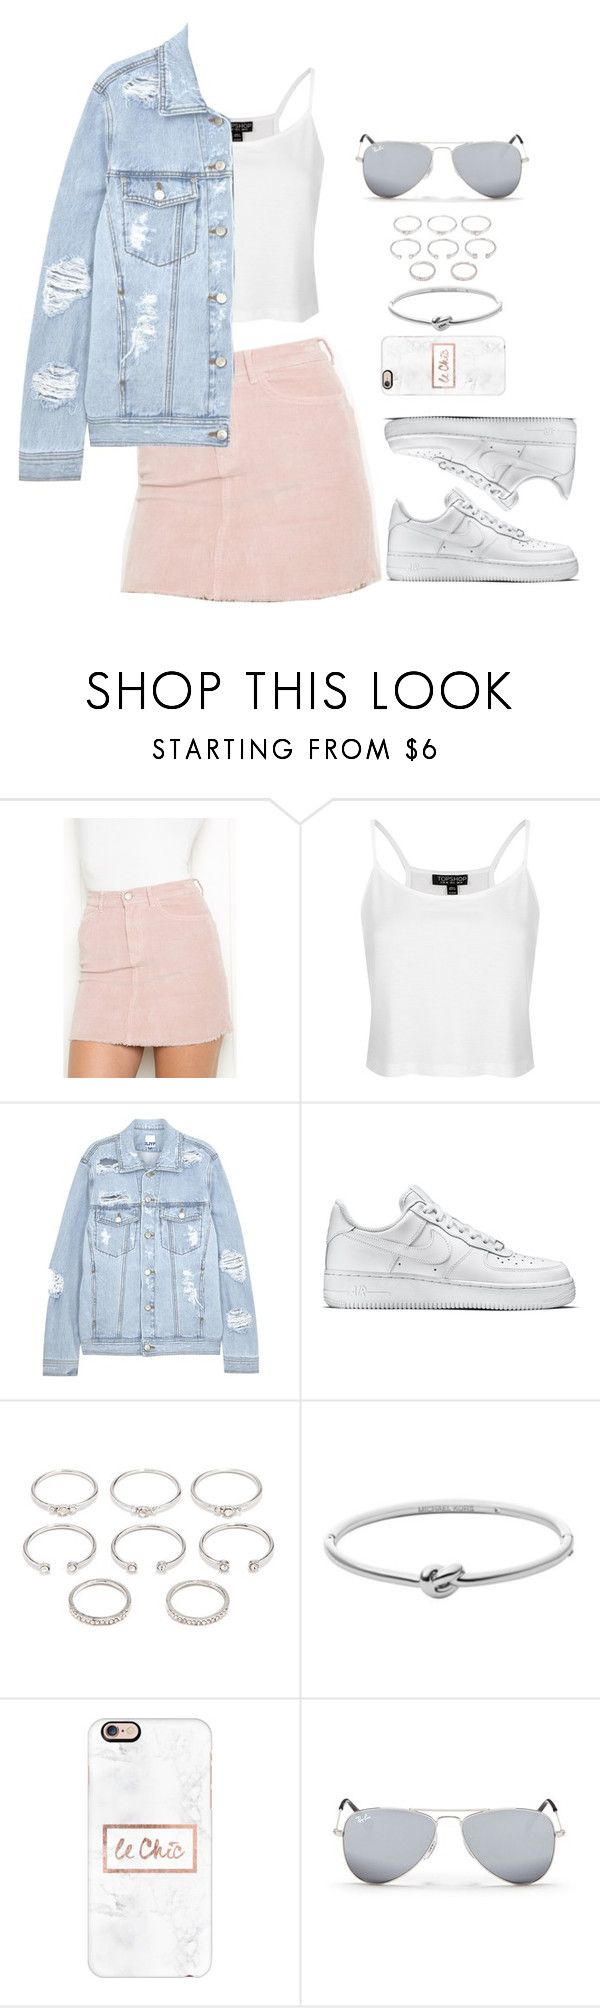 """""""Untitled #120"""" by manerefortis ❤ liked on Polyvore featuring Topshop, SJYP, NIKE, Forever 21, Michael Kors, Casetify and Ray-Ban"""